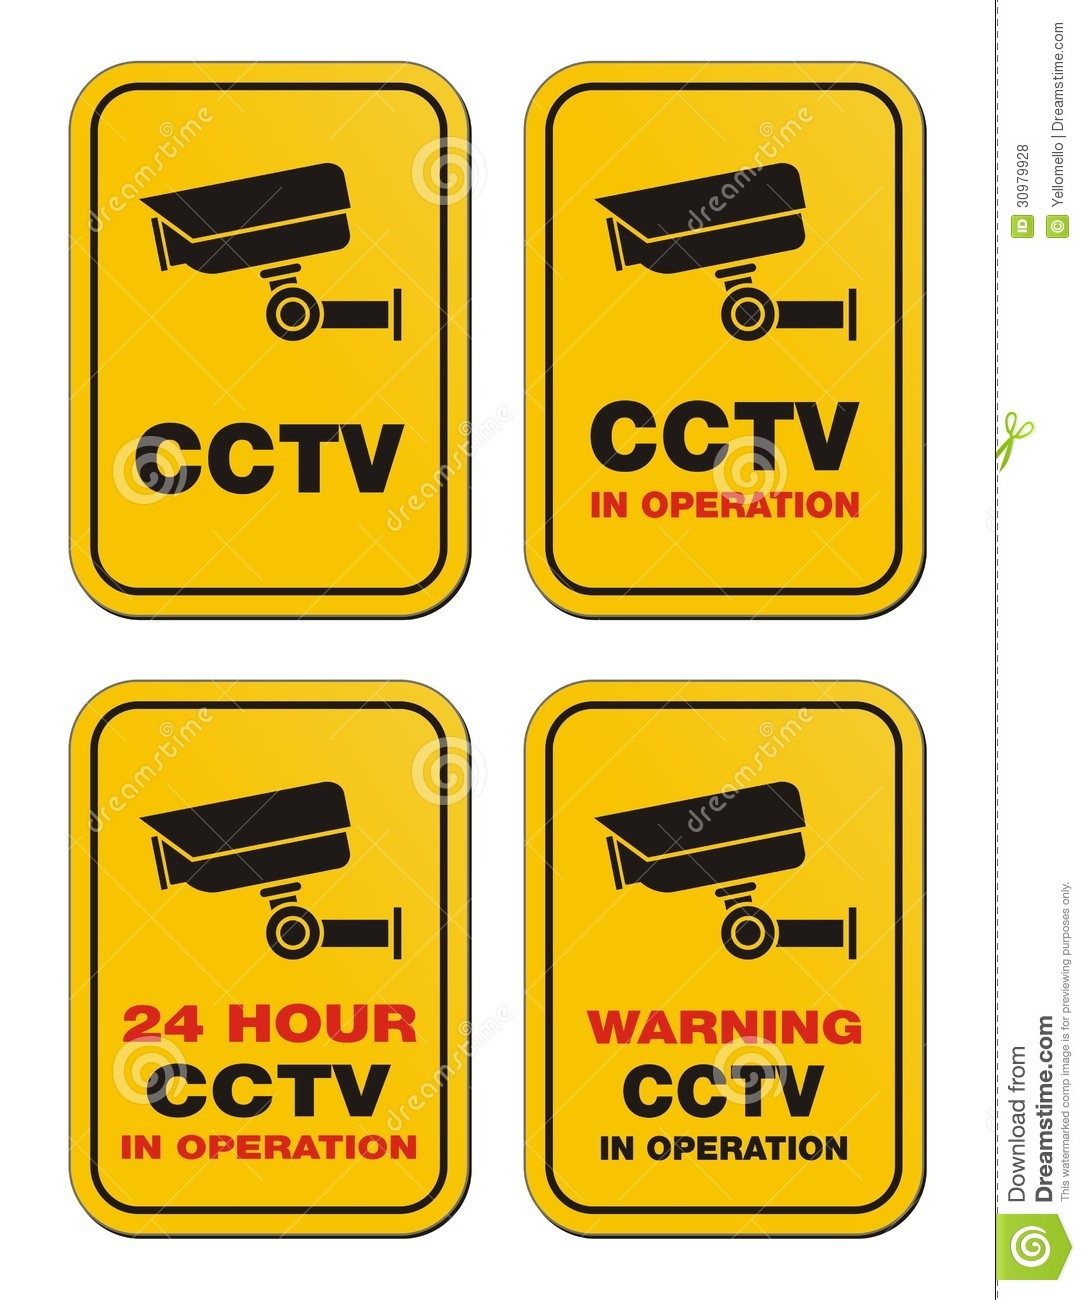 24 Hour Cctv In Operation Yellow Signs Royalty Free